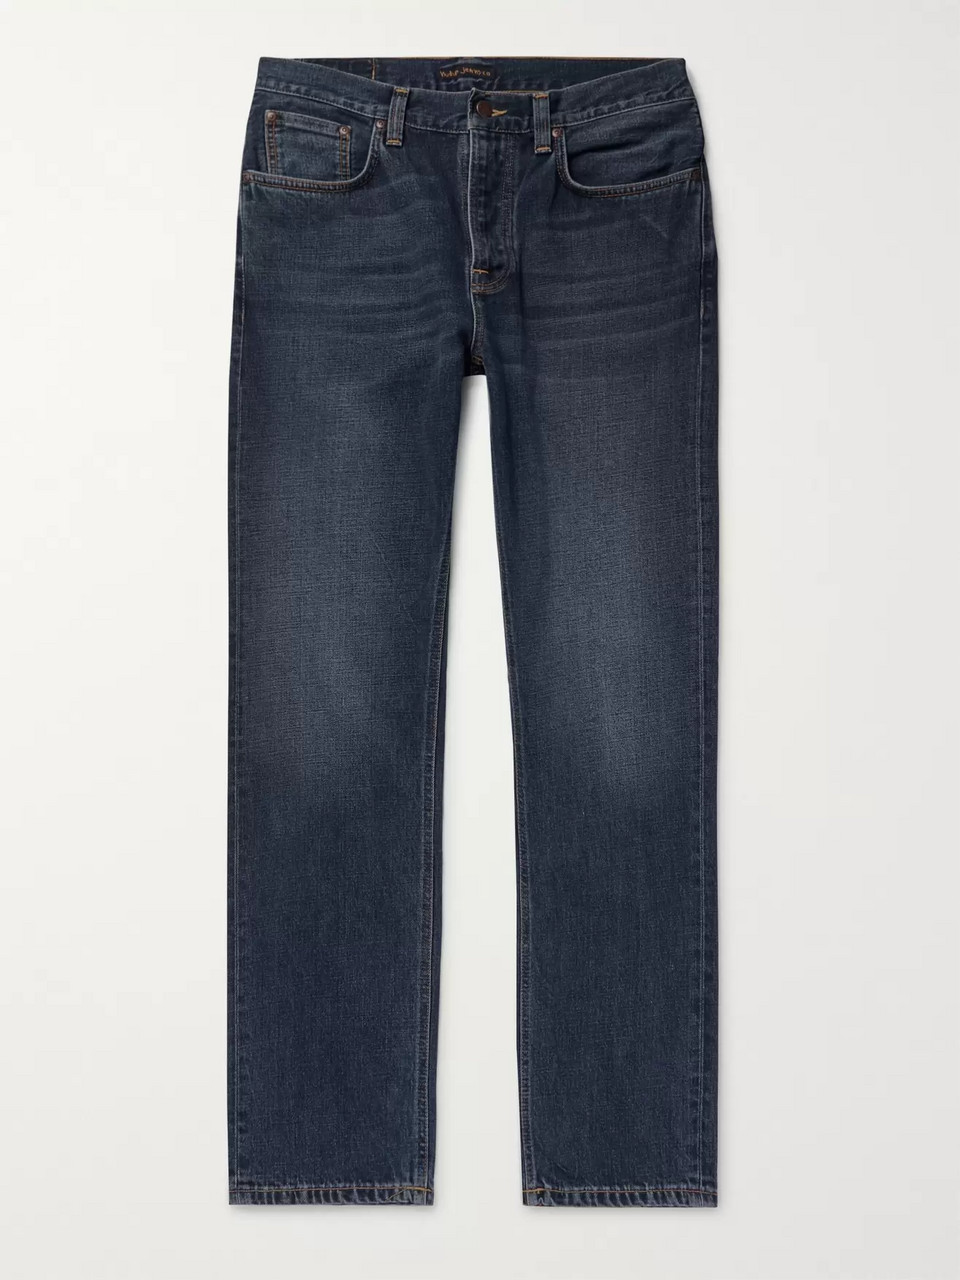 Nudie Jeans Sleepy Sixten Organic Denim Jeans